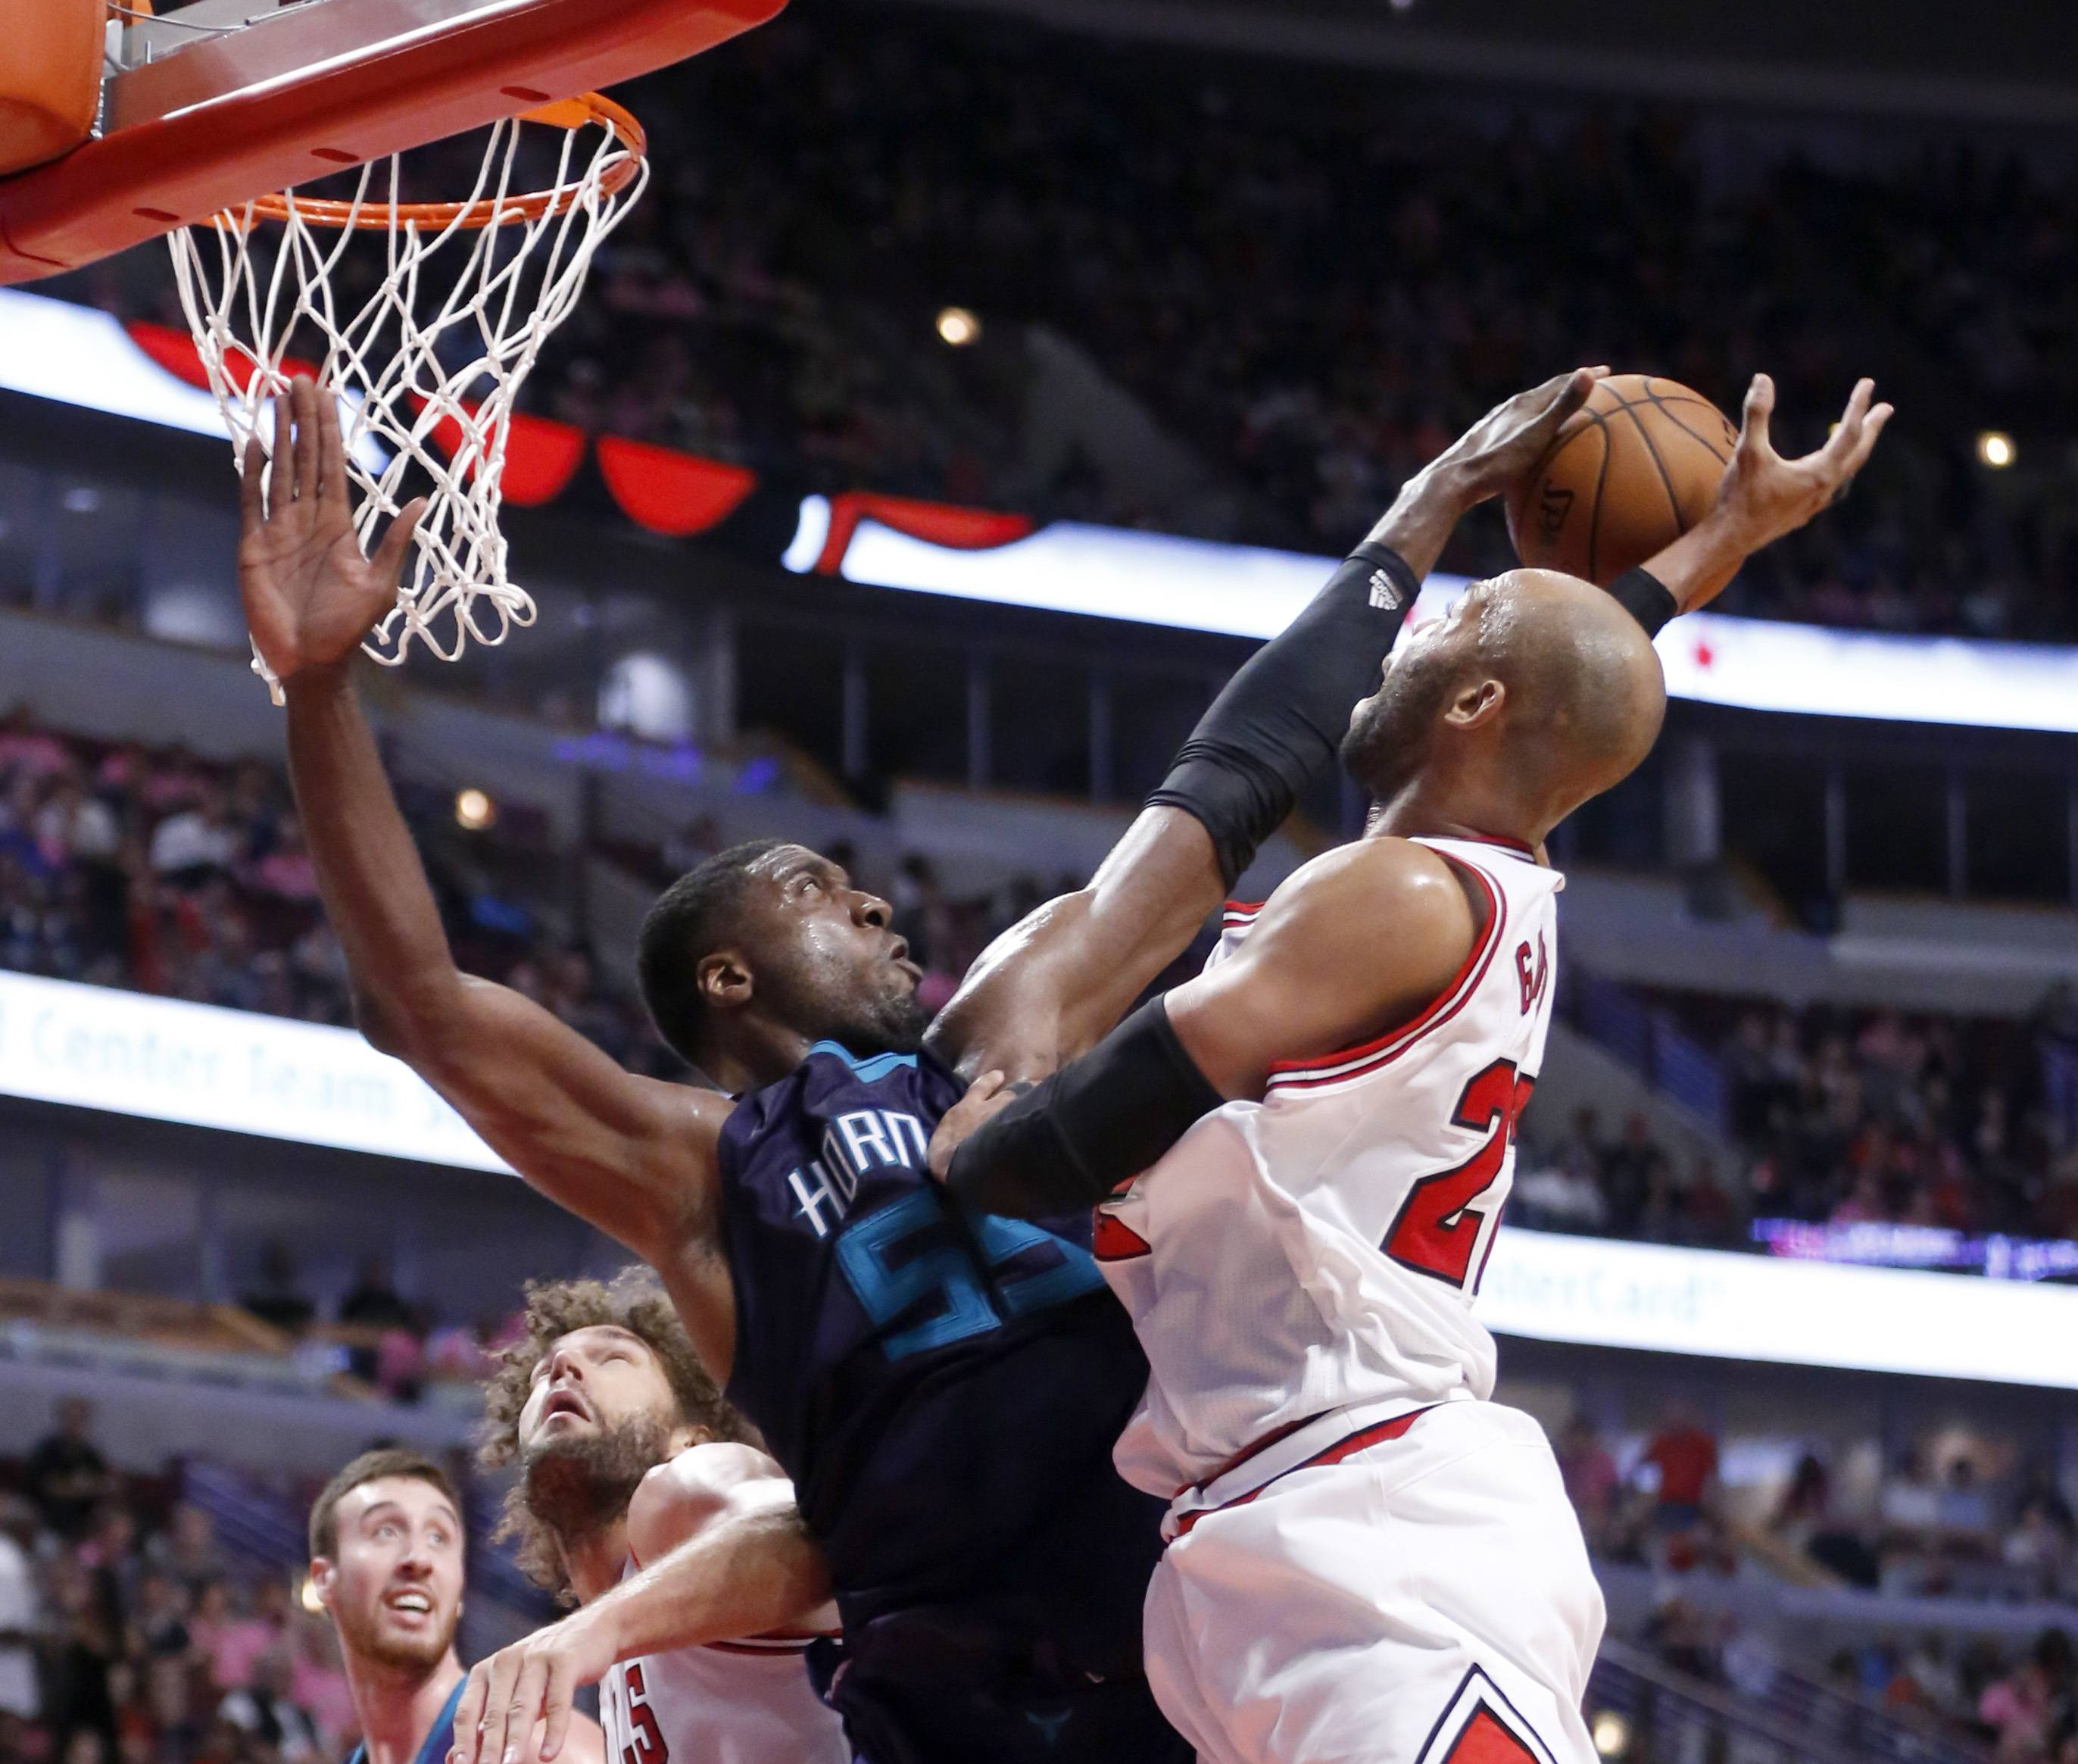 Charlotte Hornets' Roy Hibbert, left, blocks the shot of Chicago Bulls power forward Taj Gibson during a preseason game on Oct. 17, Gibson will start for the Bulls when they open their NBA season on Thursday.